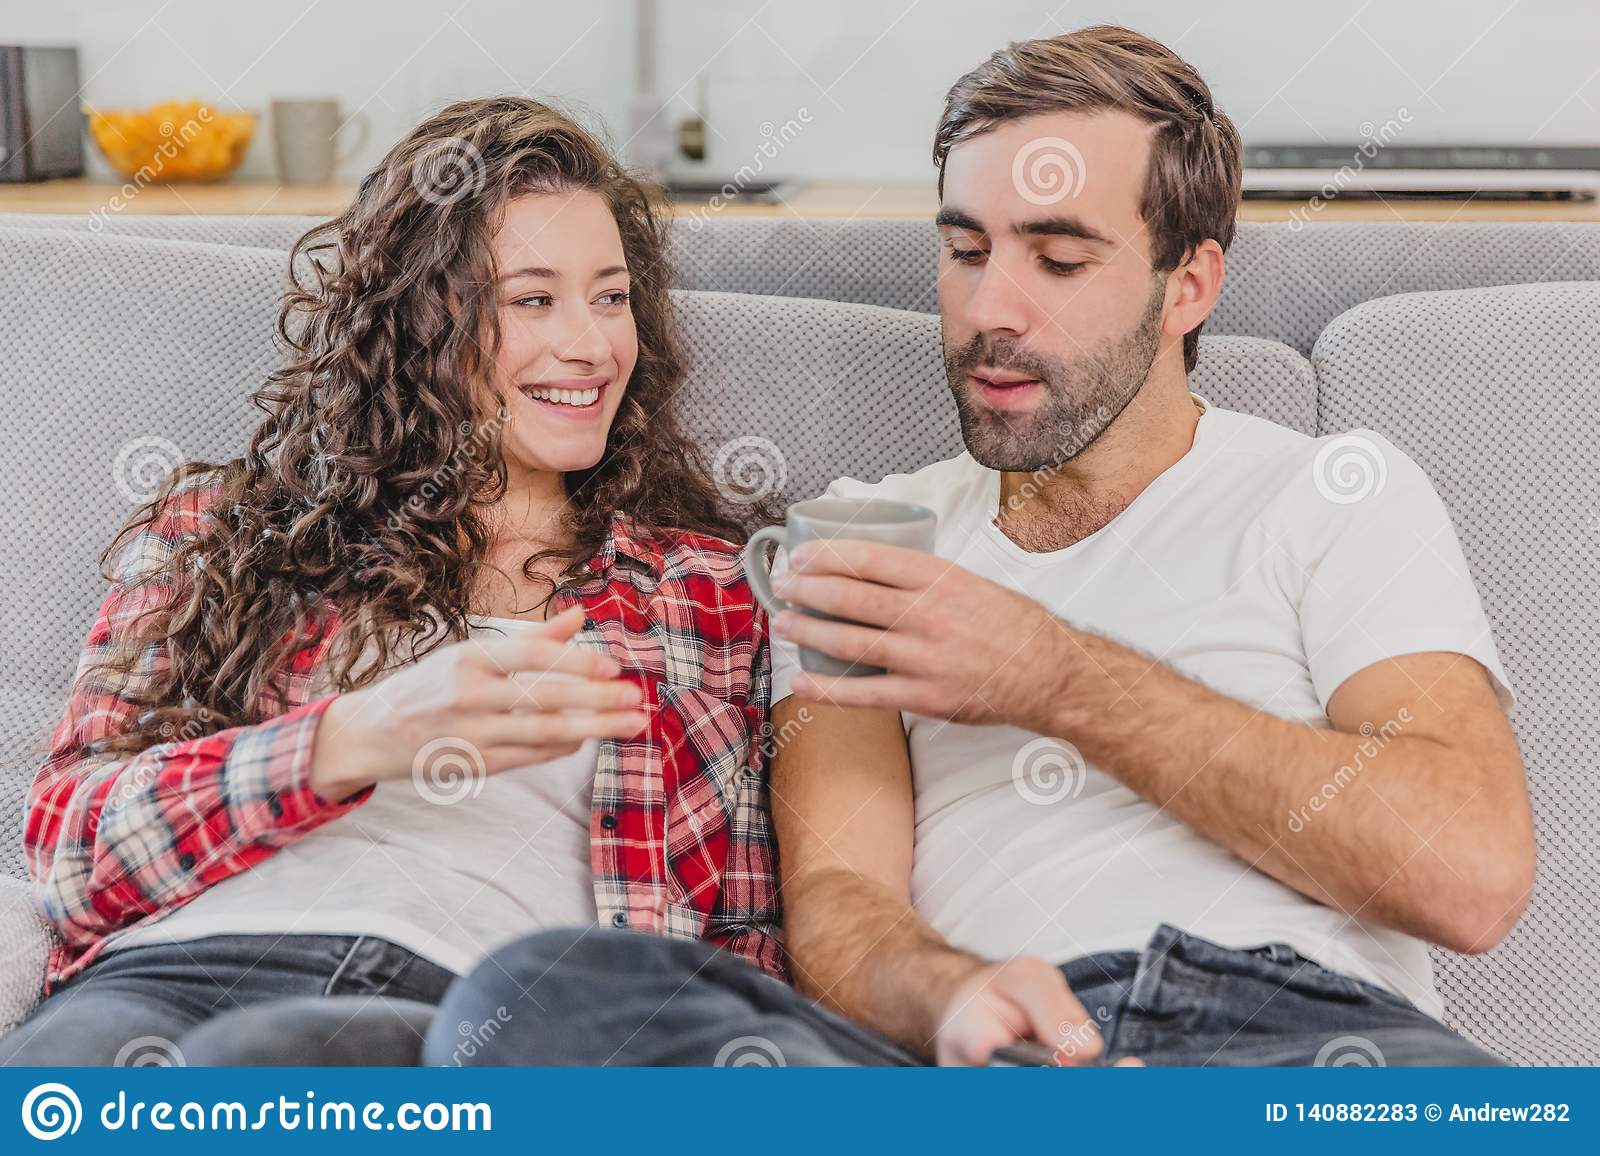 ff7a82de29c True love. Cheerful romantic couple sitting on the couch in a cozy room and  smiling